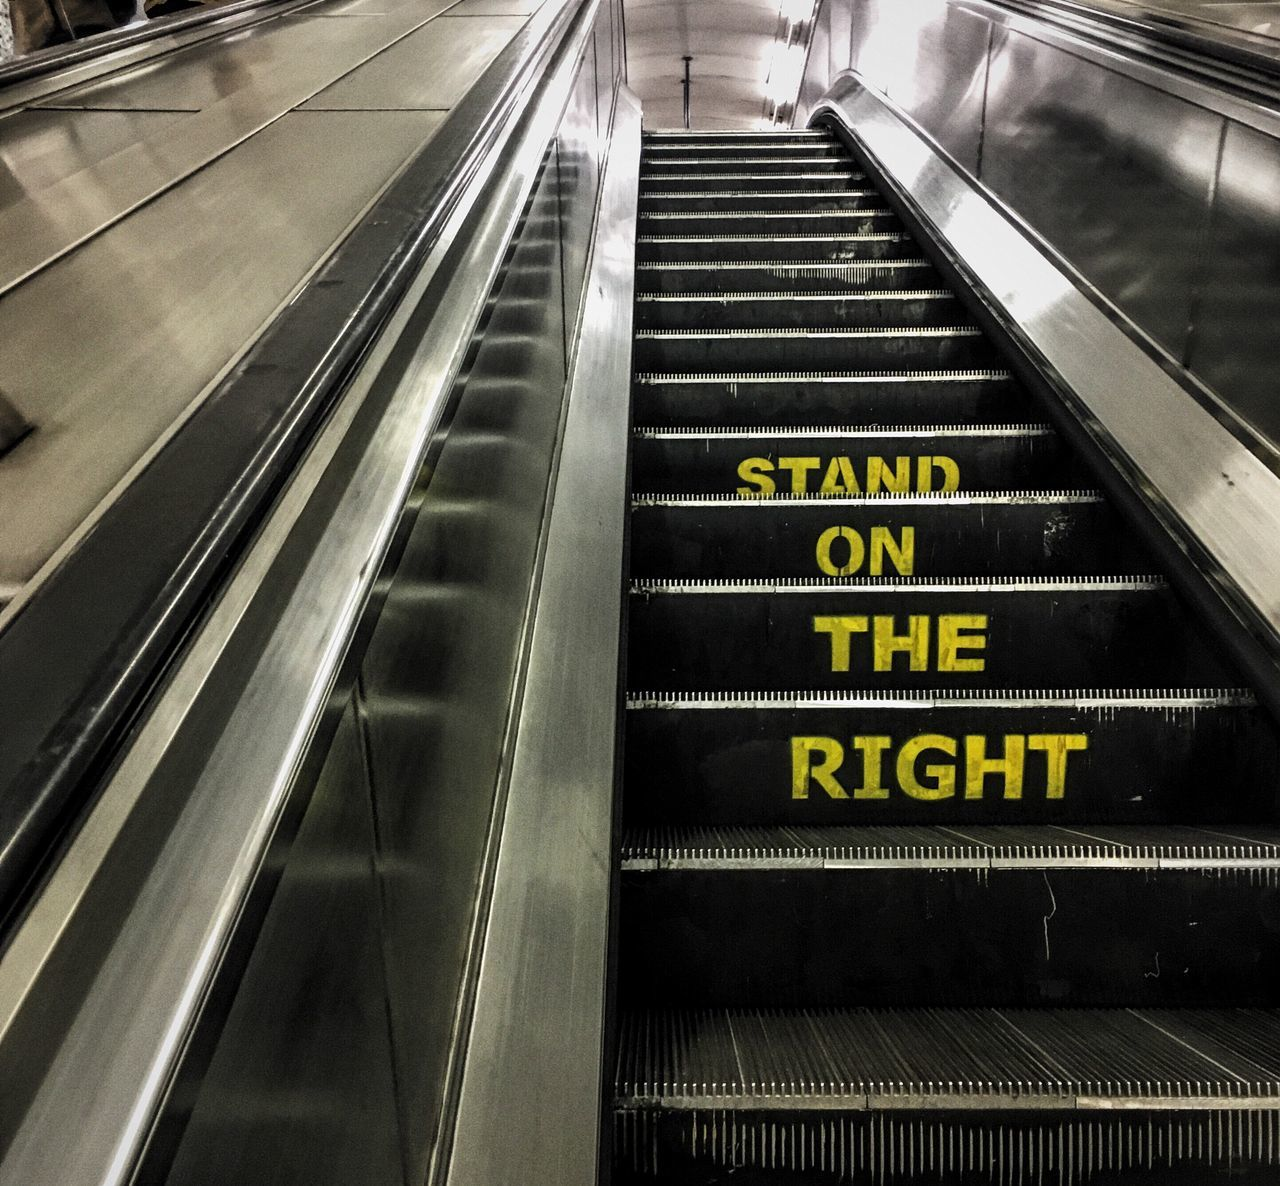 text, communication, technology, indoors, staircase, steps, transportation, steps and staircases, illuminated, subway station, convenience, no people, day